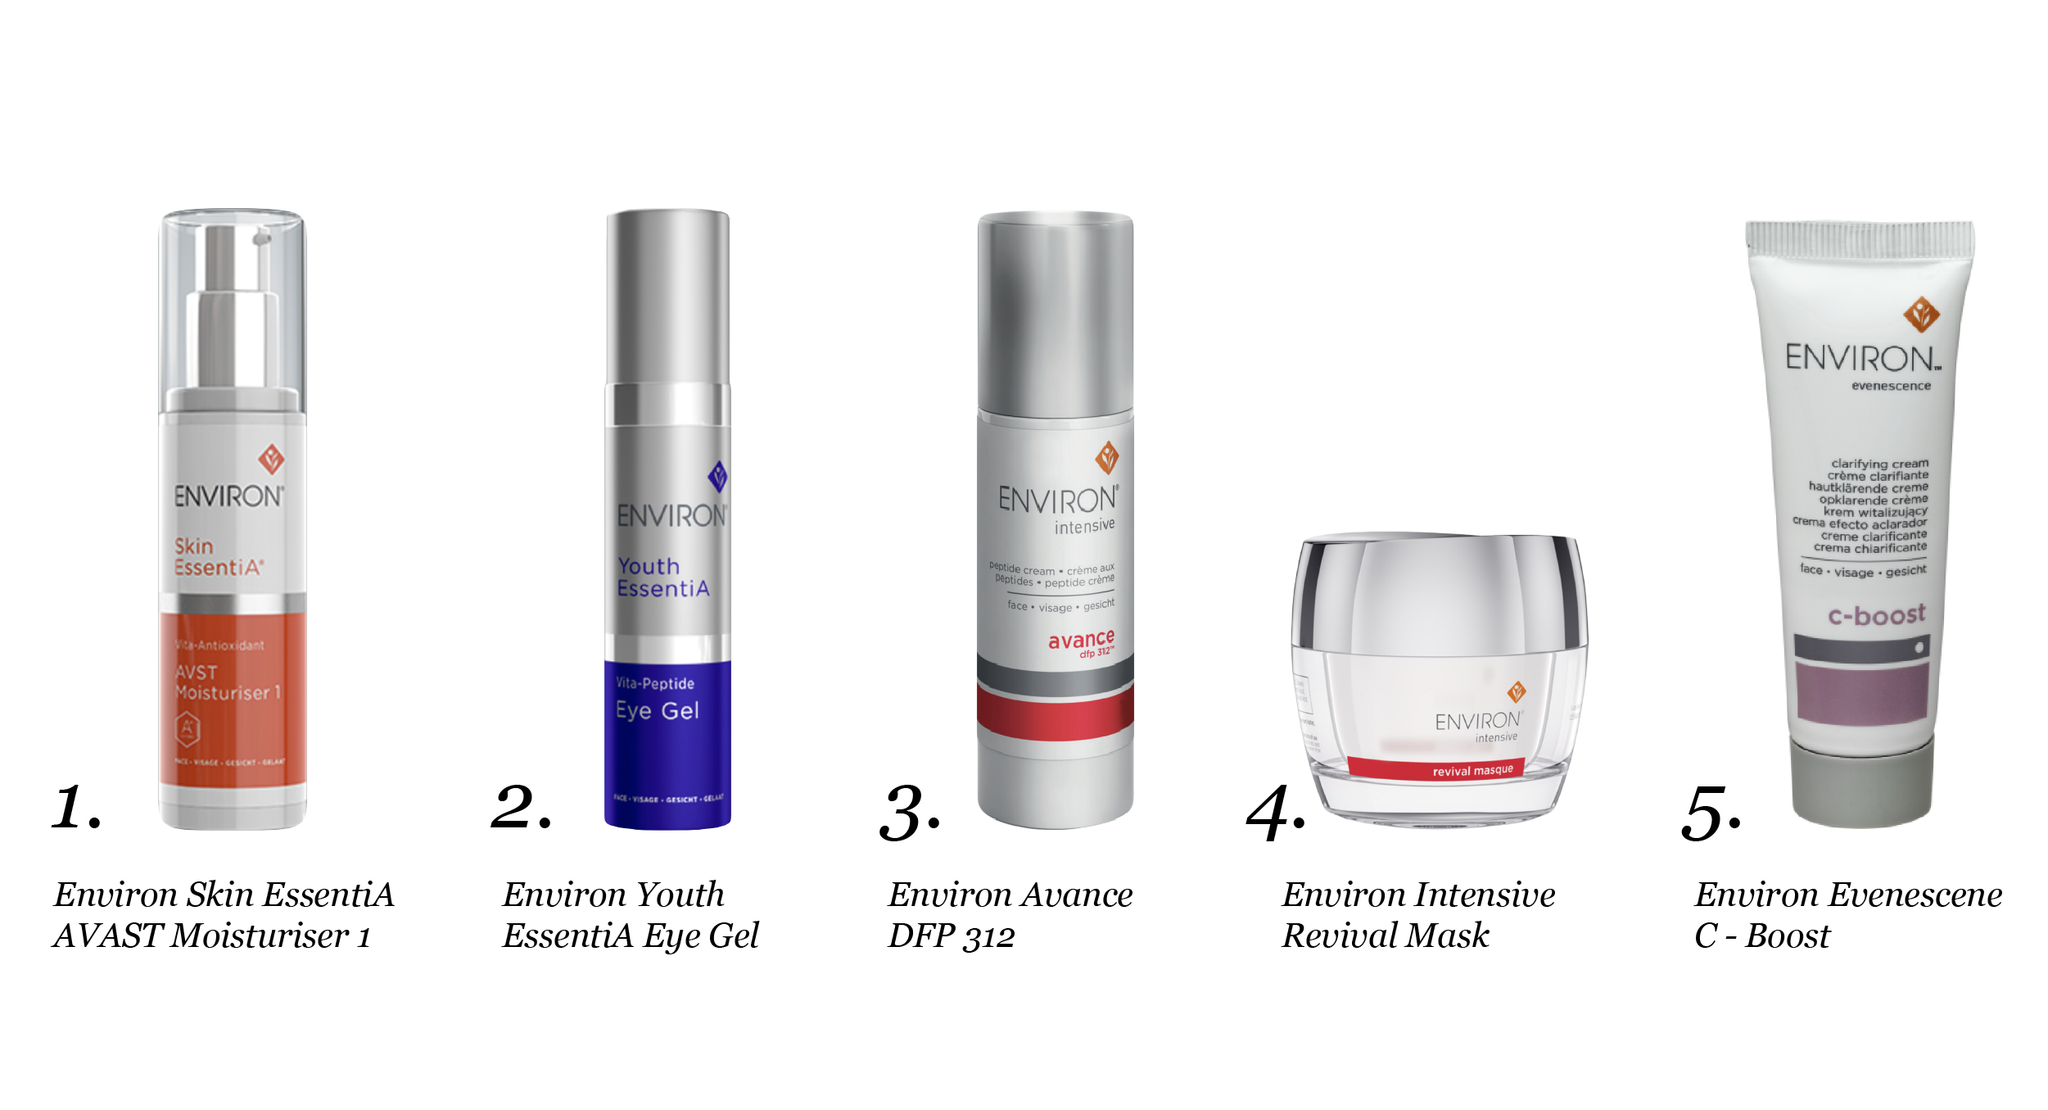 Product Focus of the Month - Environ